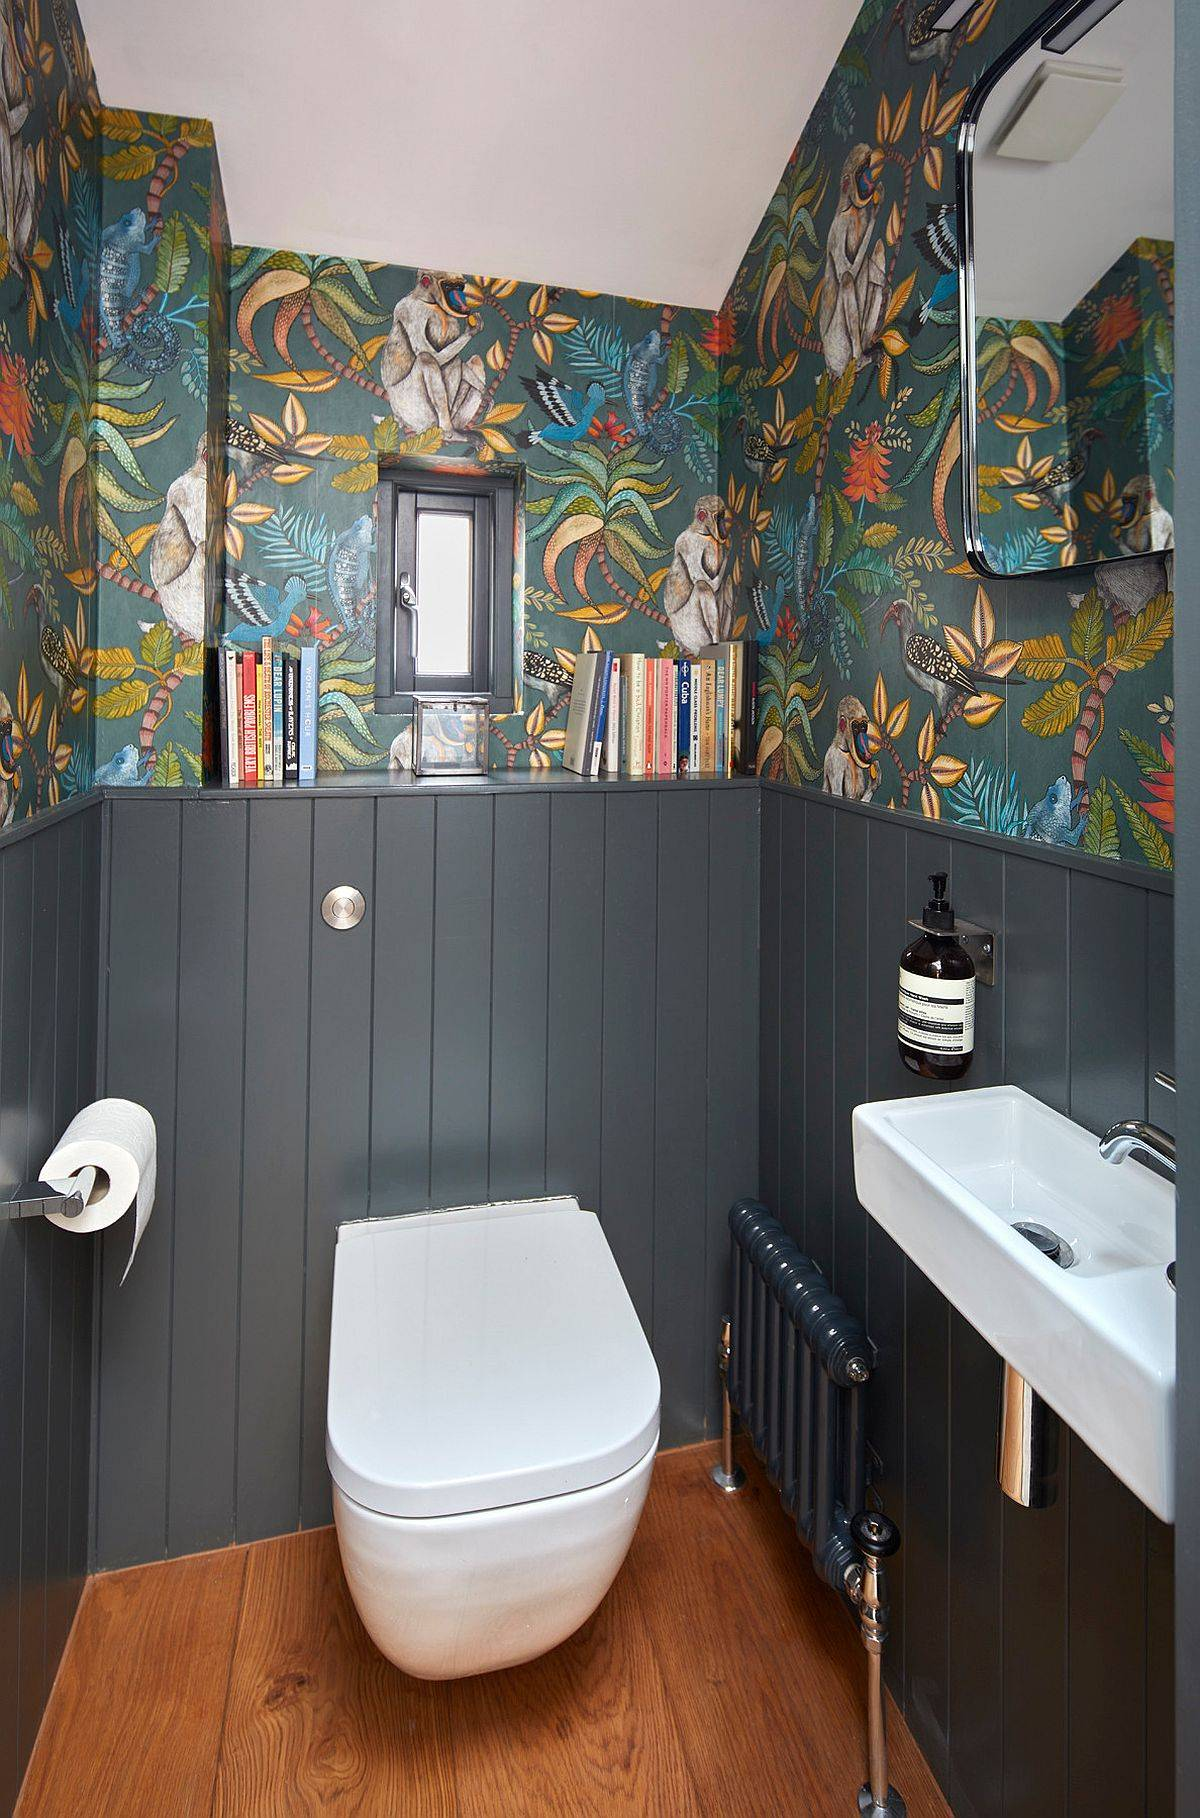 Dash-of-Gray-panache-meets-colorful-wall-art-in-this-tiny-eclectic-powder-room-88314